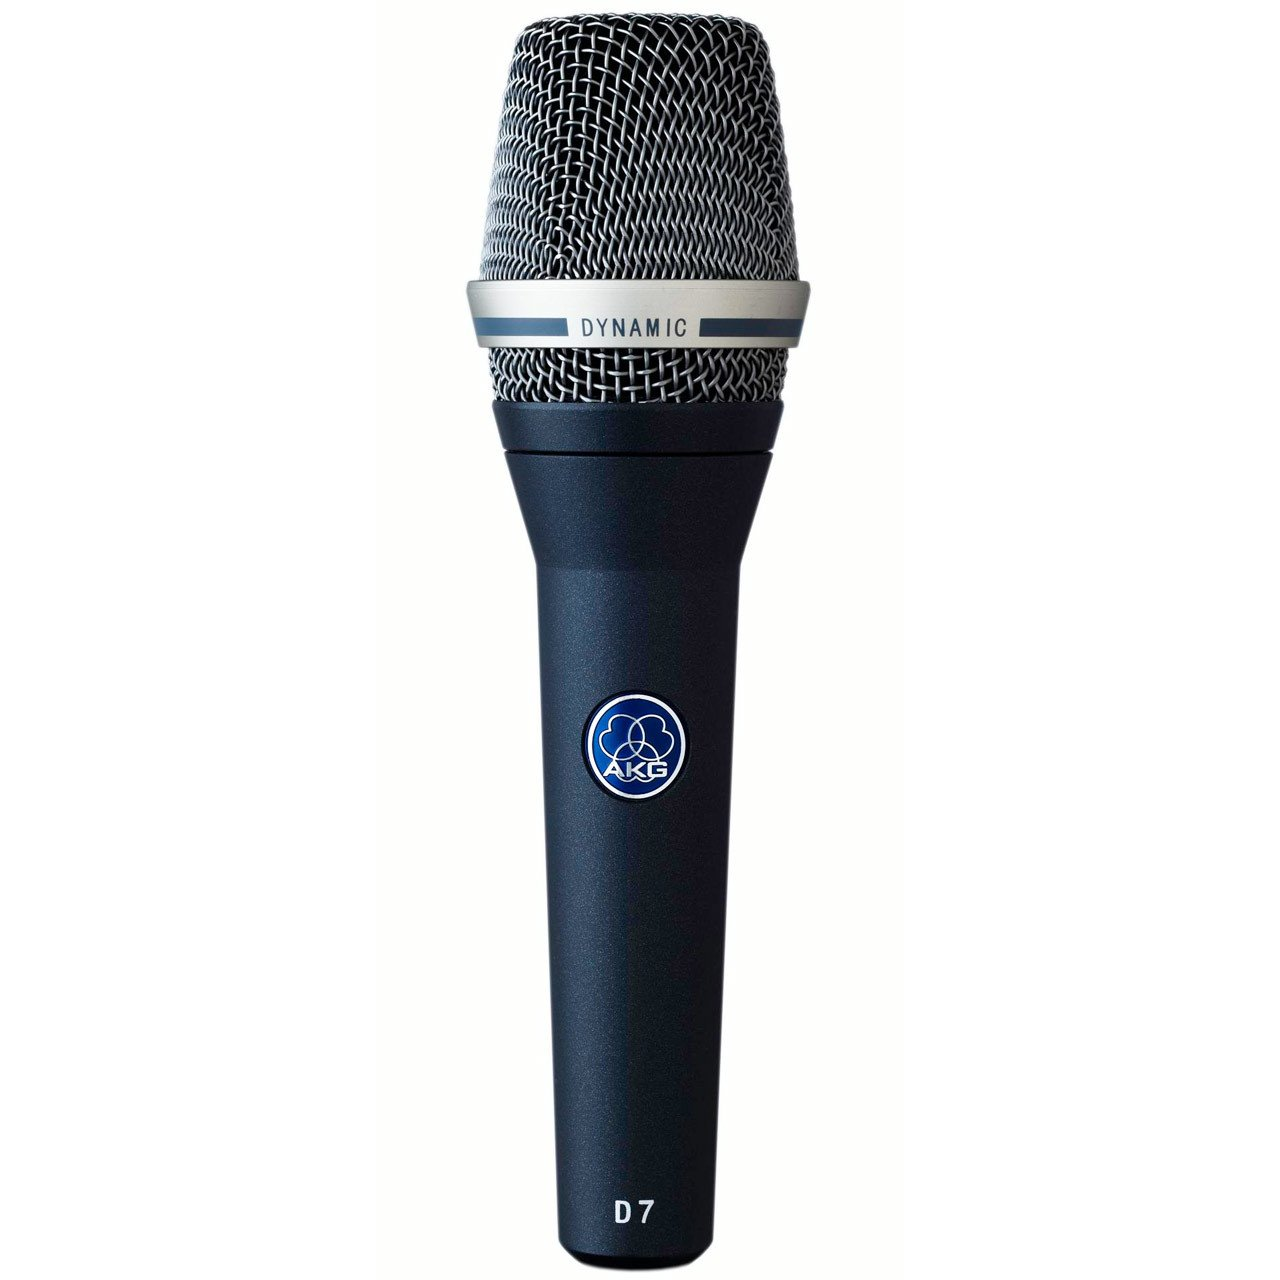 Dynamic Microphones - AKG D7 Handheld Dynamic Vocal Microphone